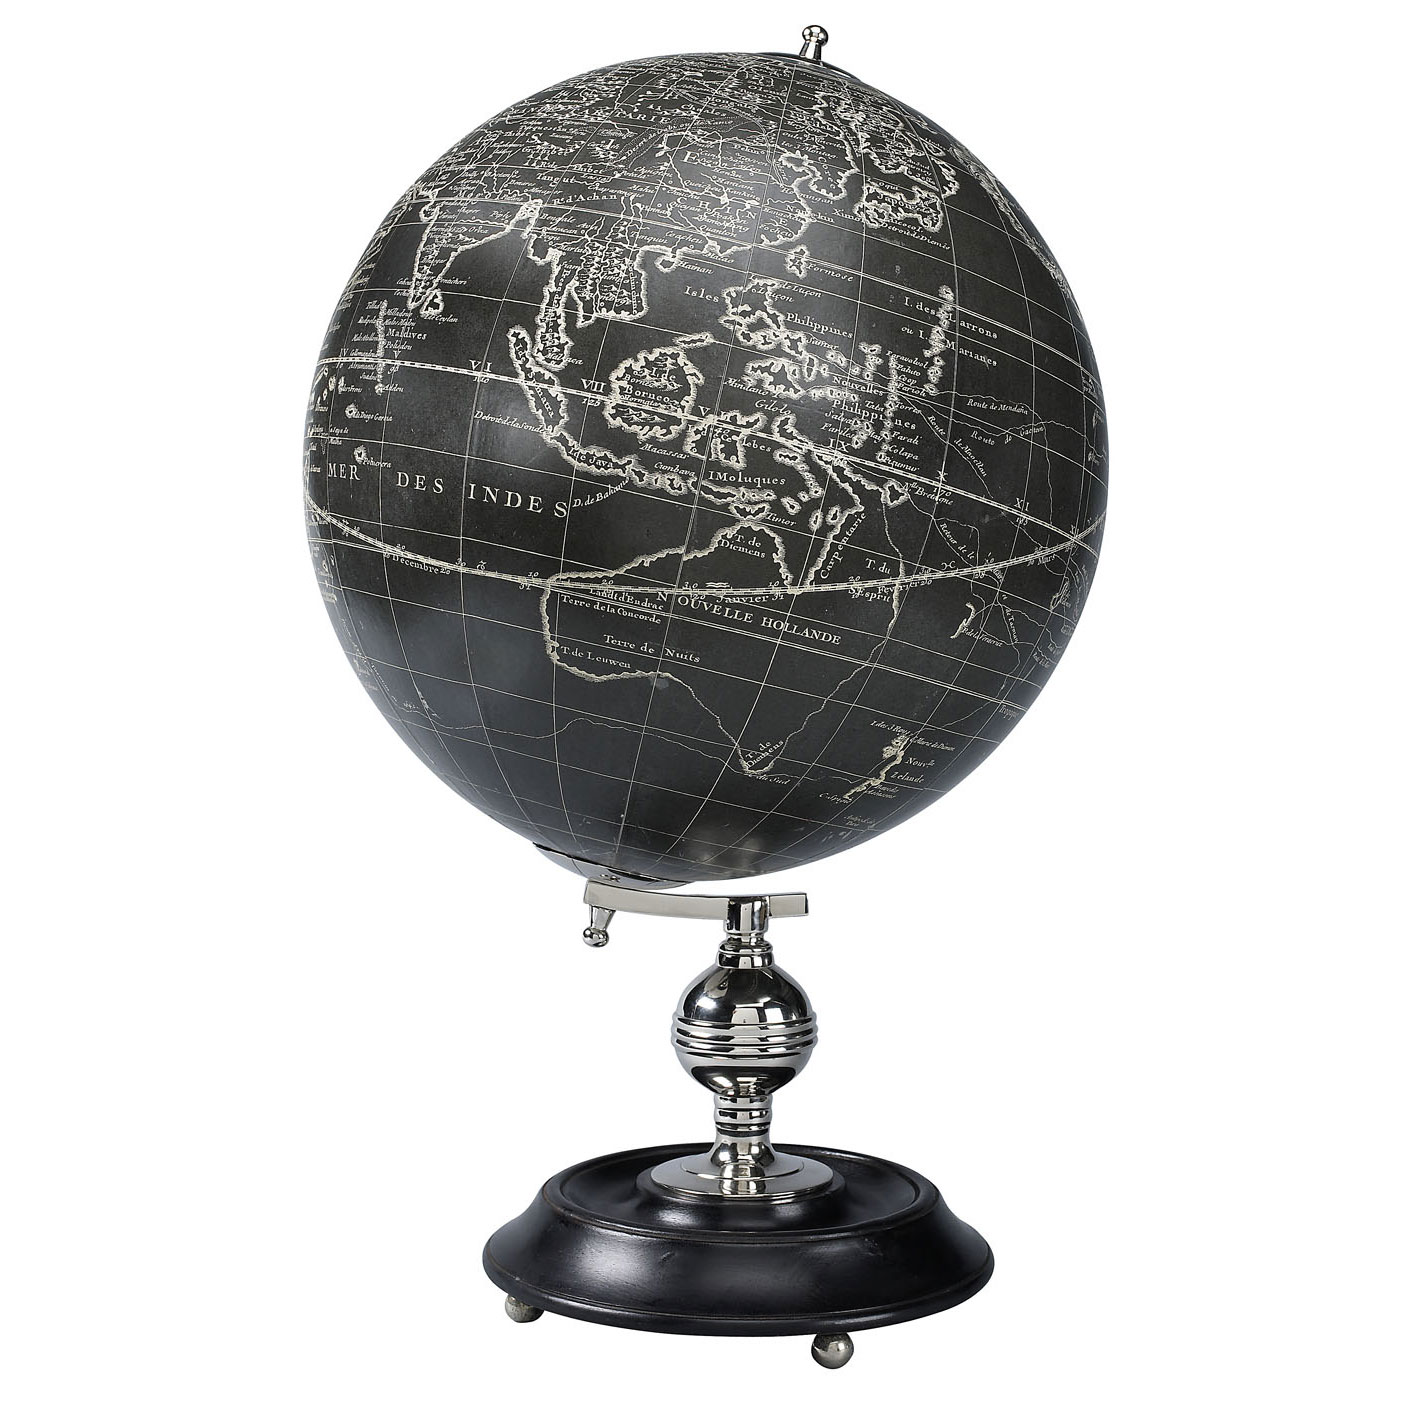 antique globe vaugondy black reproduction or old globe or historical globe. Black Bedroom Furniture Sets. Home Design Ideas